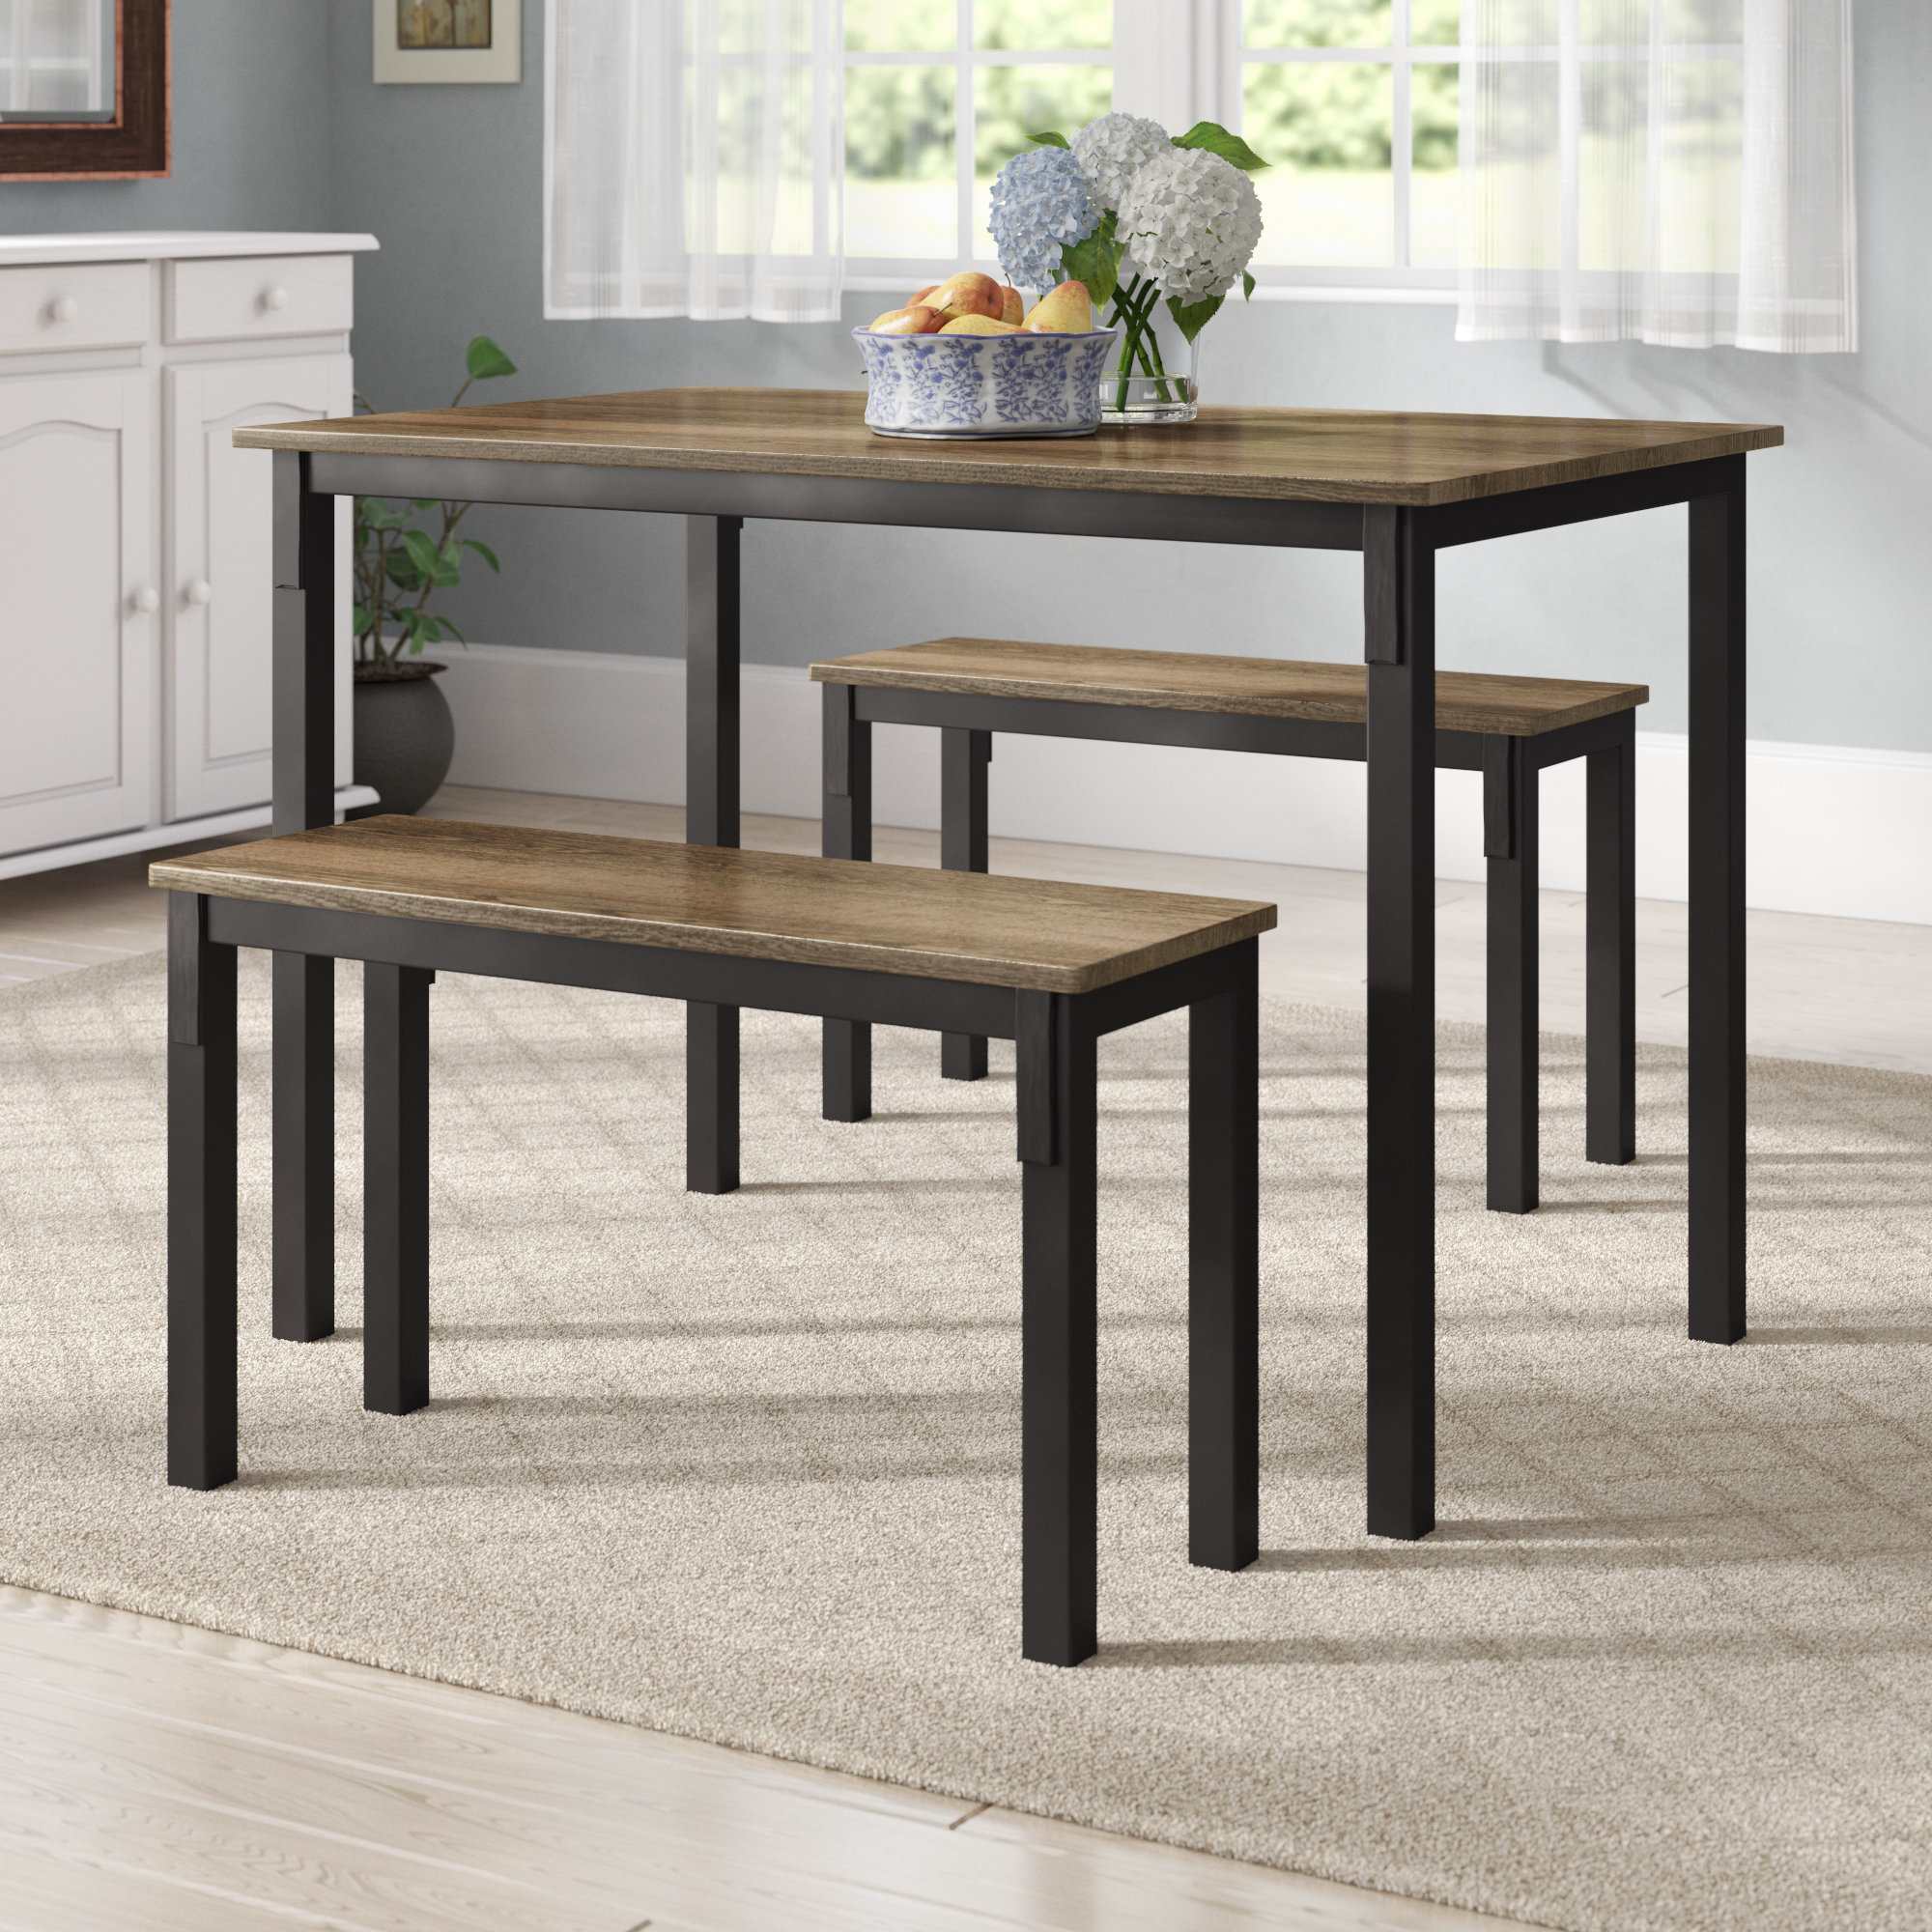 2018 3 Piece Dining Sets Regarding Rossiter 3 Piece Dining Set (View 1 of 20)